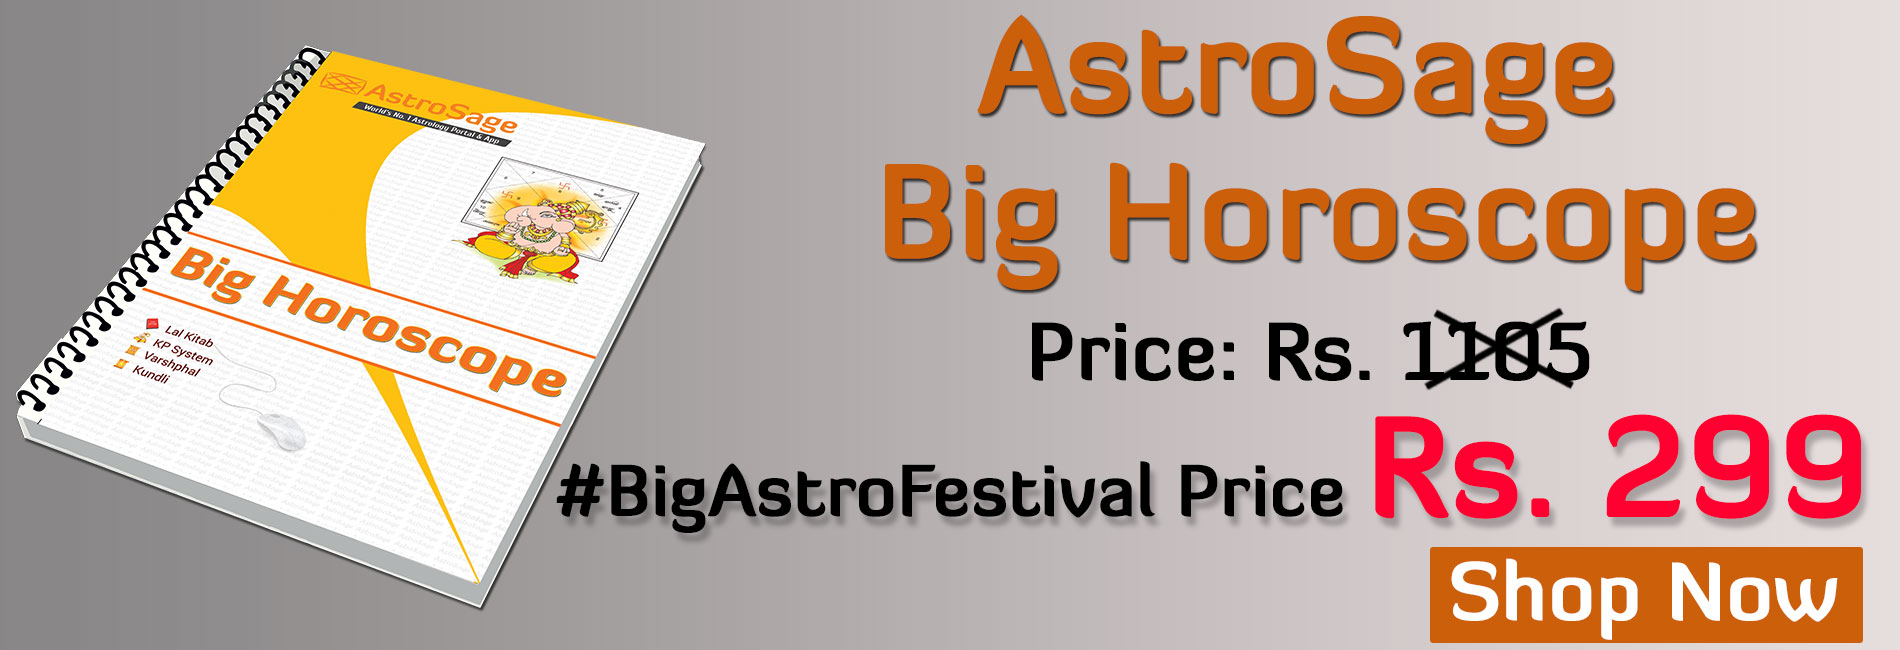 Products 1 consult astrologer rs 199 big horoscope rs 299 many more get 5 mukhi rudraksha for free be a part of big astro festival from 21st